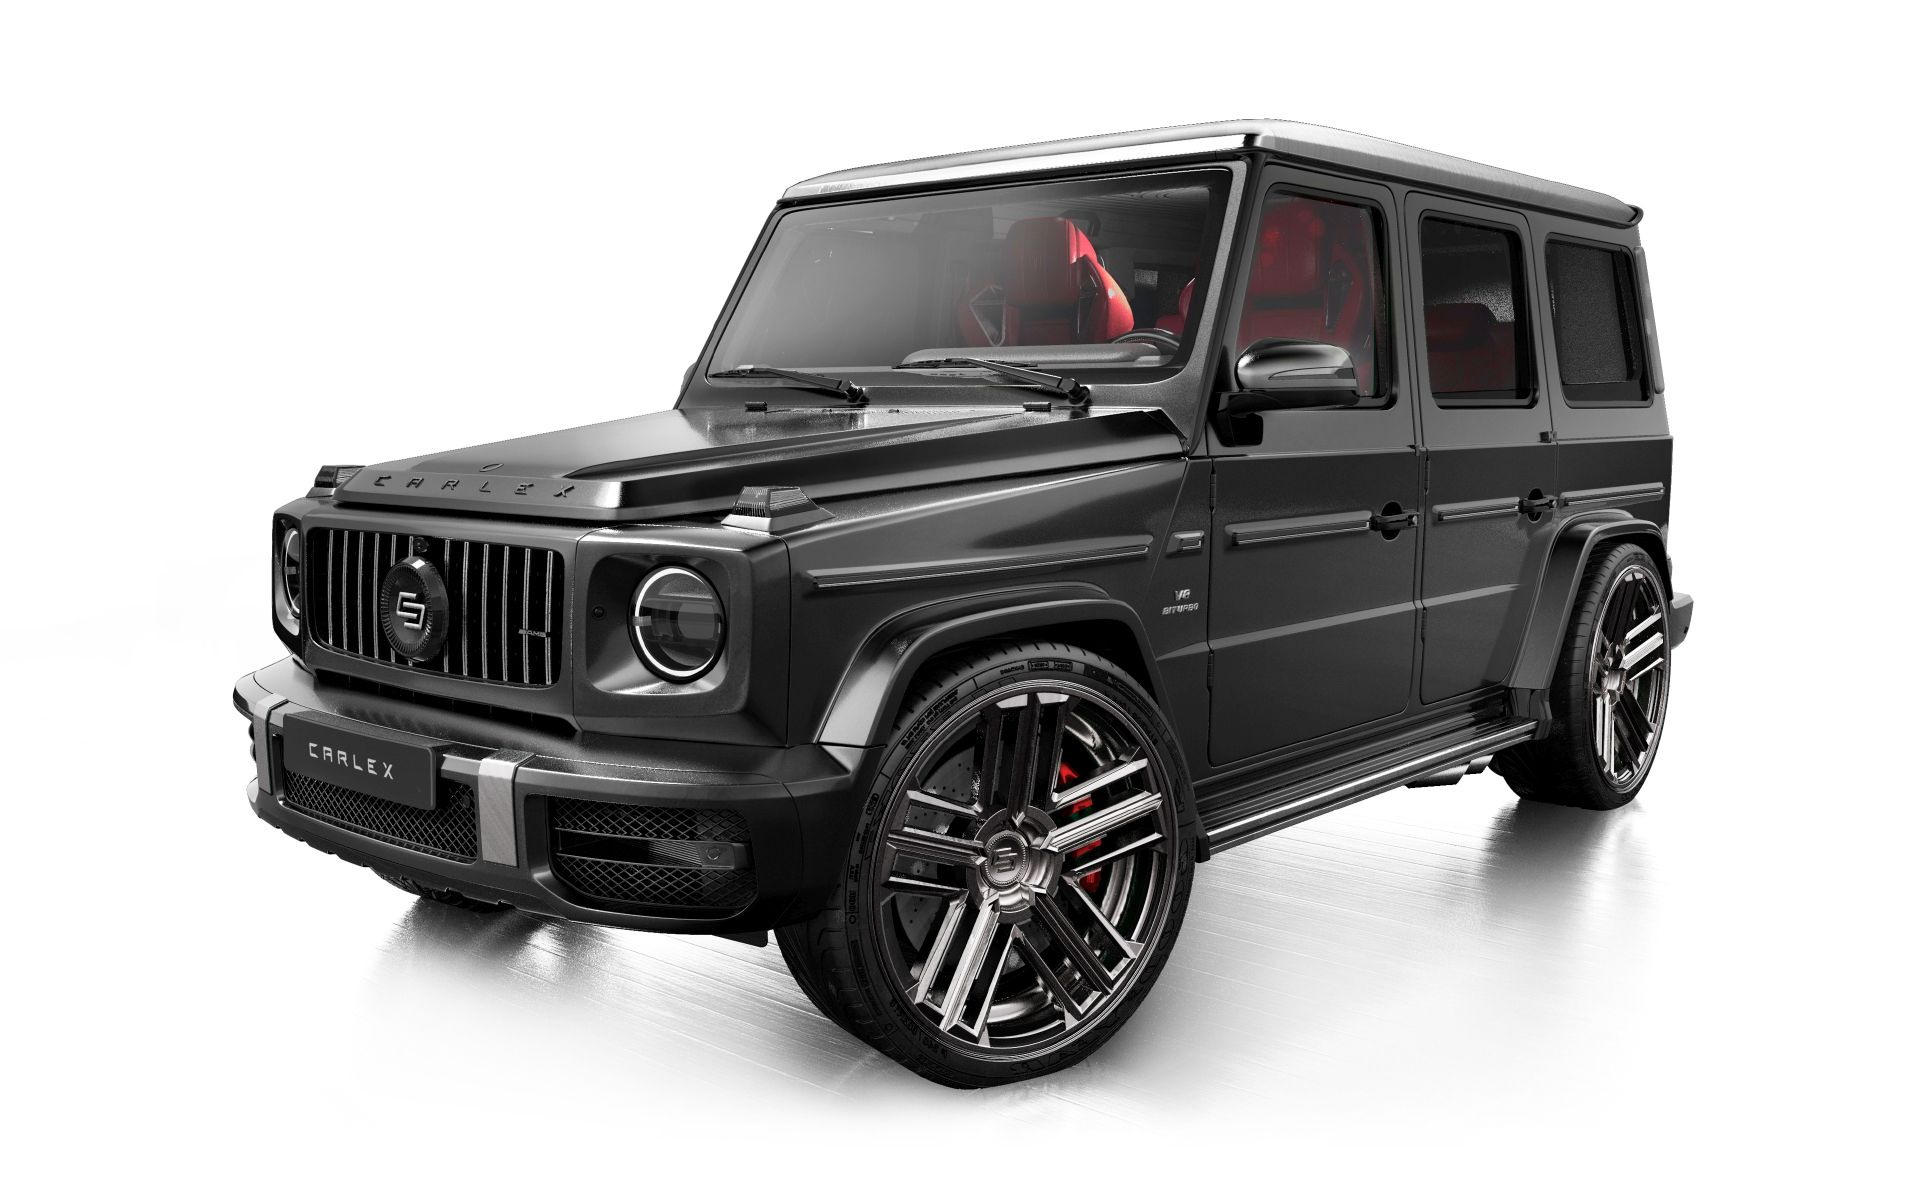 Mercedes-Benz G63 AMG 40th Anniversary Edition